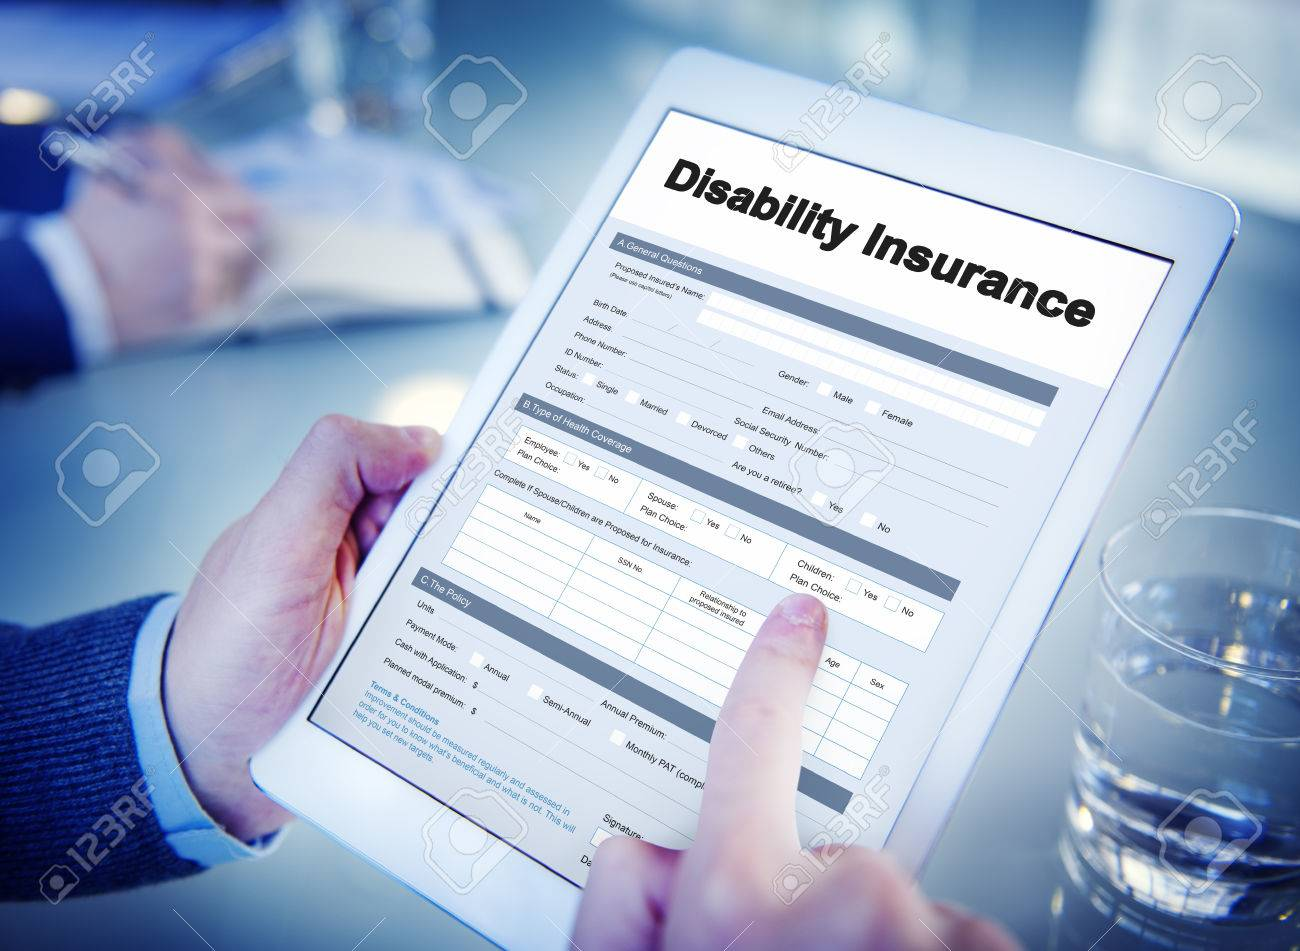 Disability Insurance Claim Form Document Concept Stock Photo - 63709577